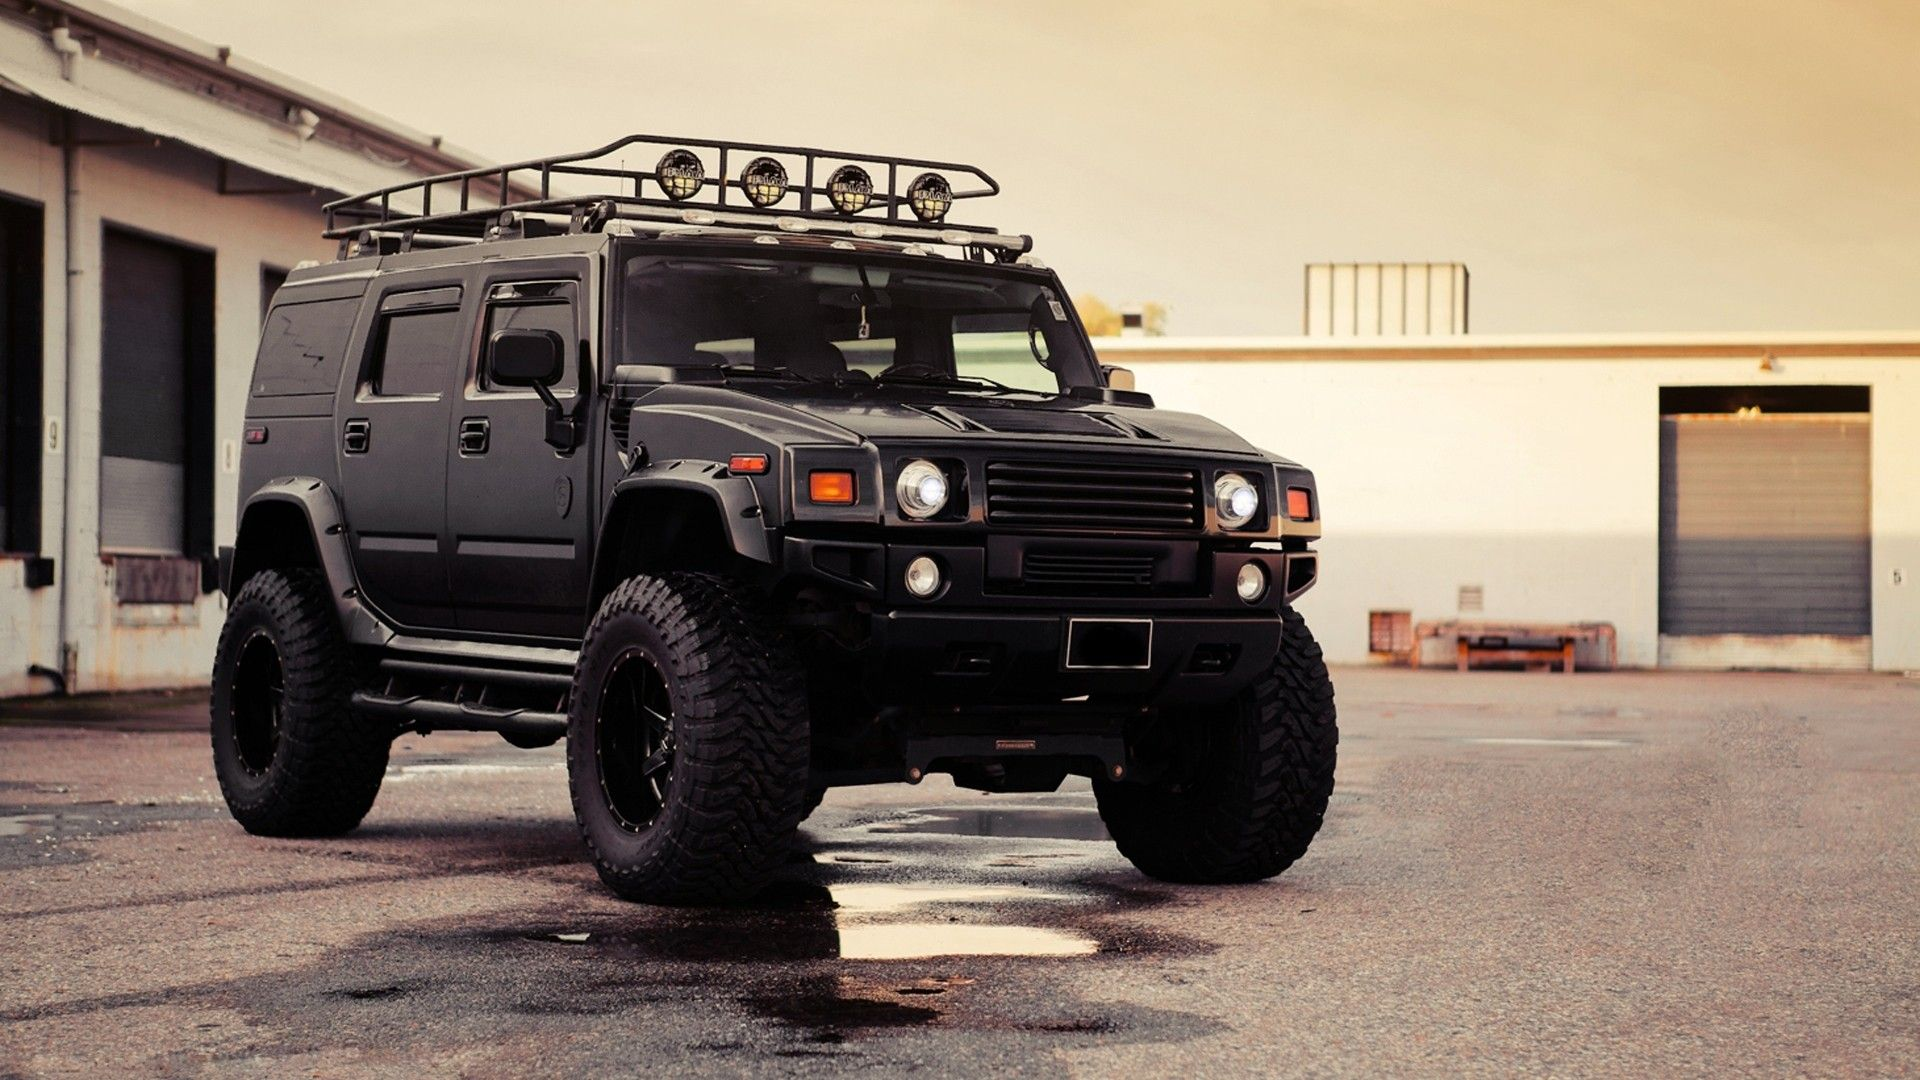 medium resolution of hummer h2 hd 1080p wallpapers download